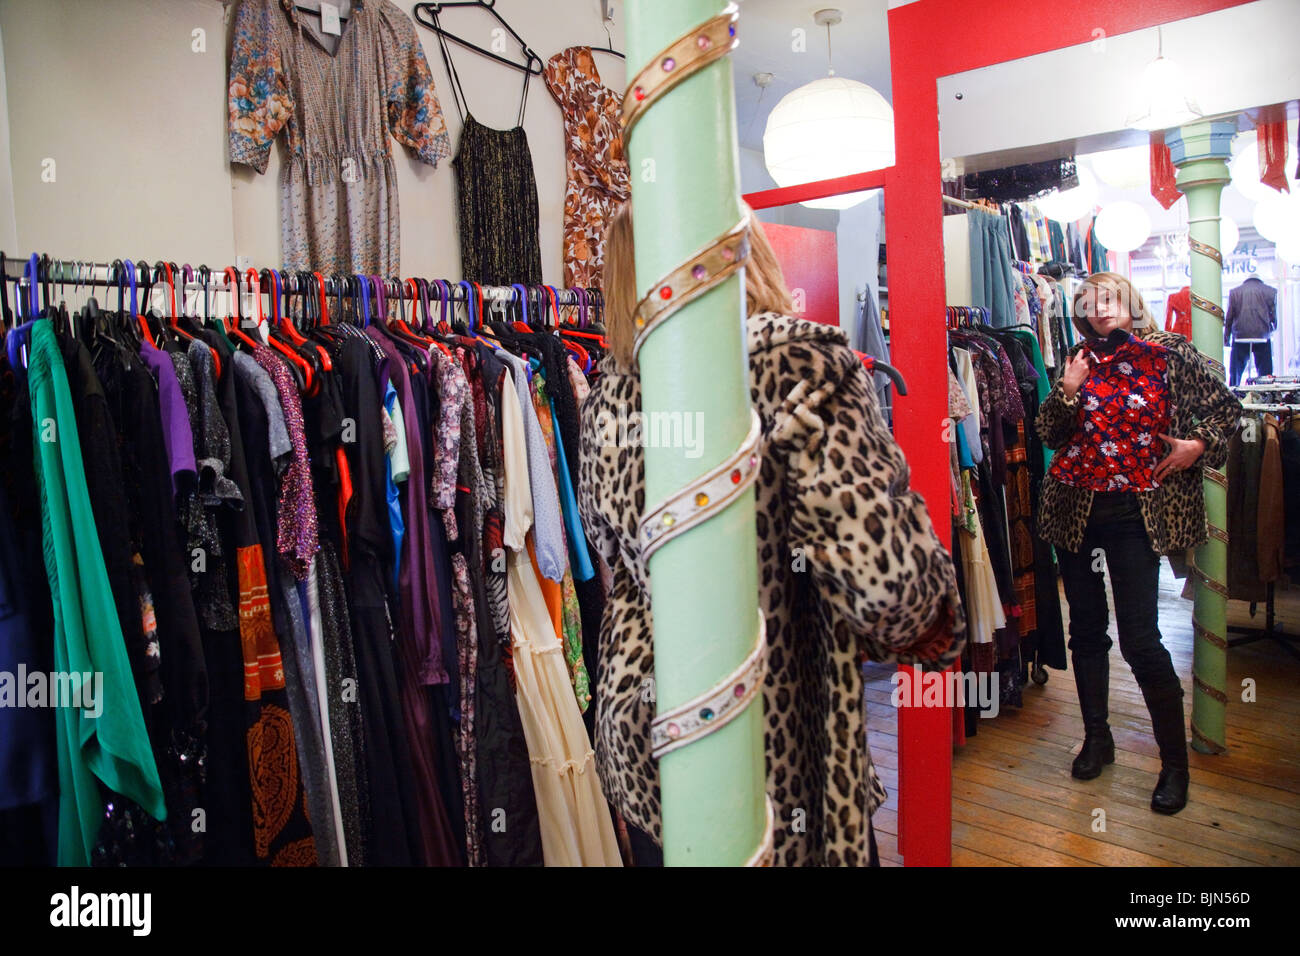 J taylor clothing store